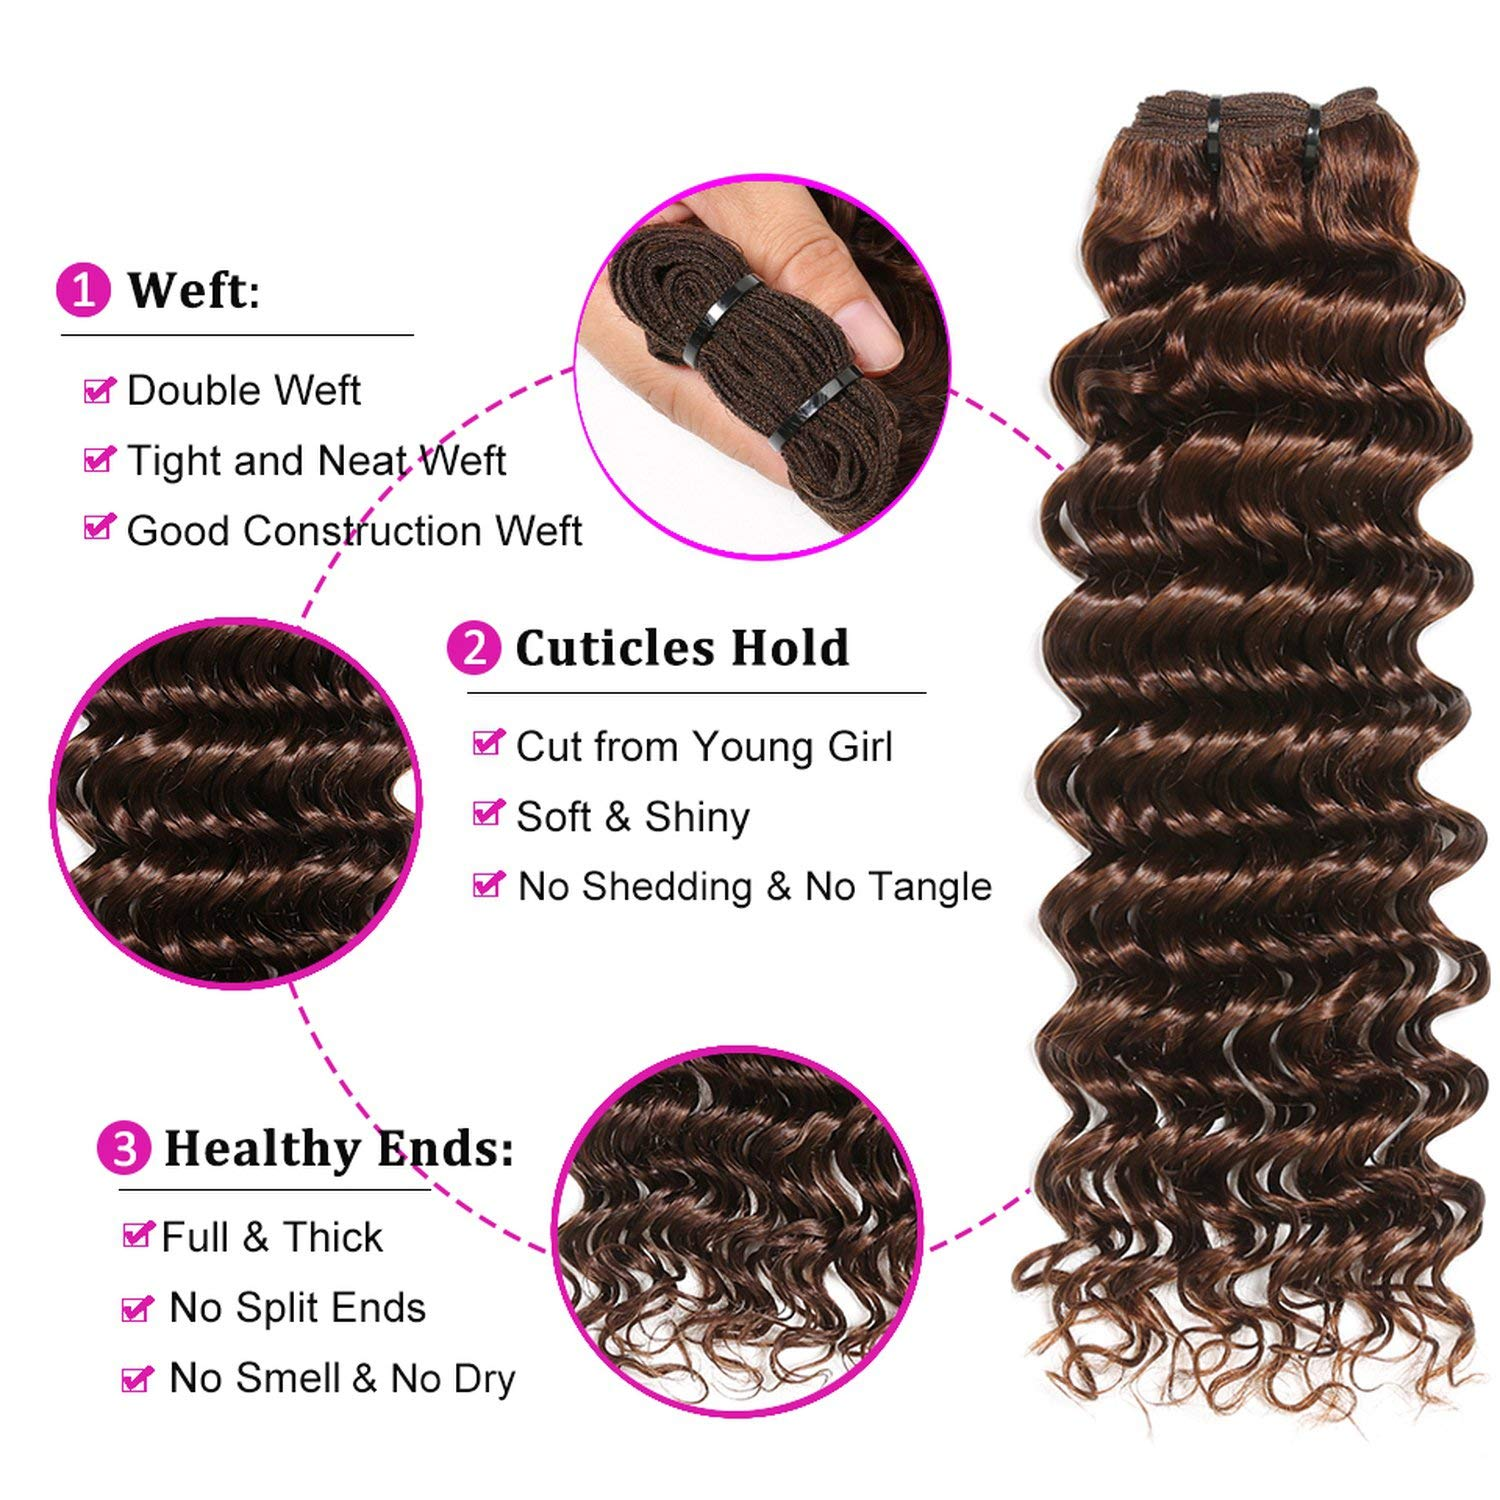 Deep Wave Bundles Brazilian Human Hair 3/4 Bundles 100% Human Hair Extensions NonRemy Dark/Light Brown #27 Blonde Colored The rest of my life,24 24 24 24,#4